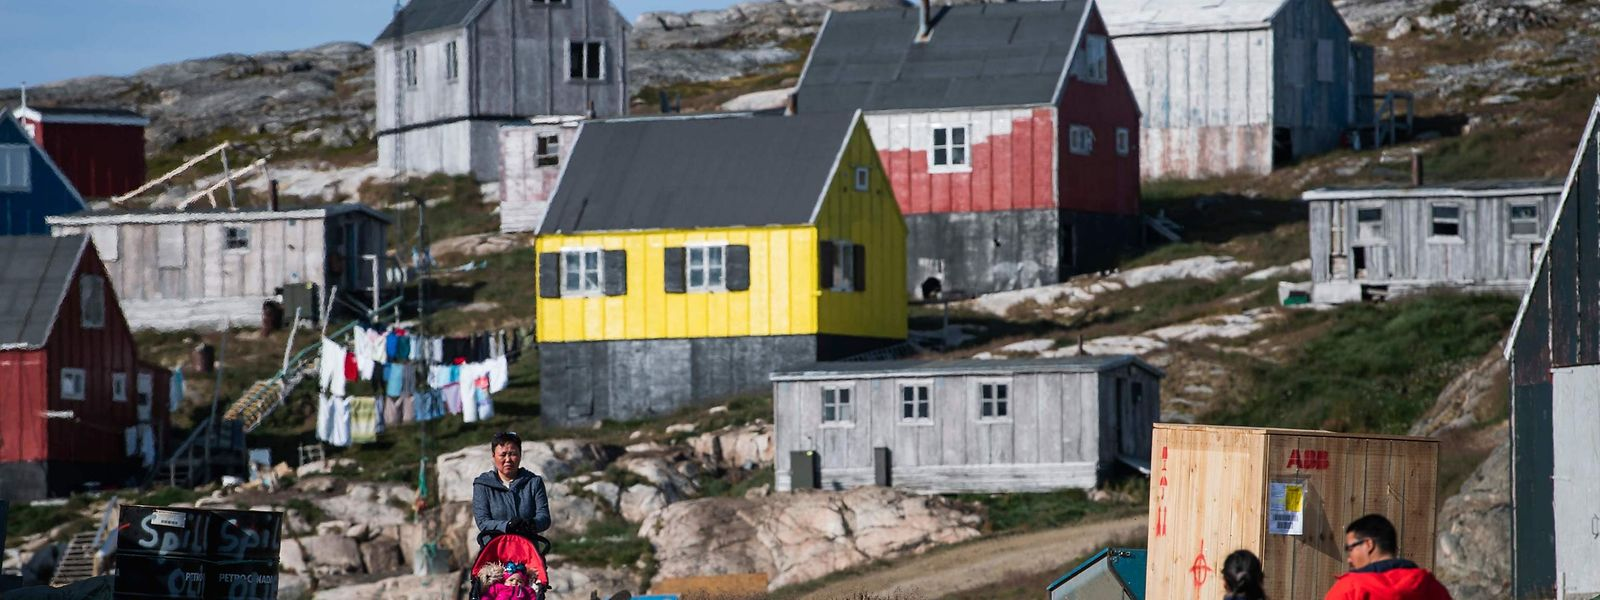 Residents of Kulusuk walk in Kulusuk, Greenland on August 16, 2019. - Greenland is not for sale, the mineral-rich island said on August 16, 2019, after a newspaper reported that US President Donald Trump was asking advisers whether it's possible for the United States to buy the Arctic island. (Photo by Jonathan NACKSTRAND / AFP)